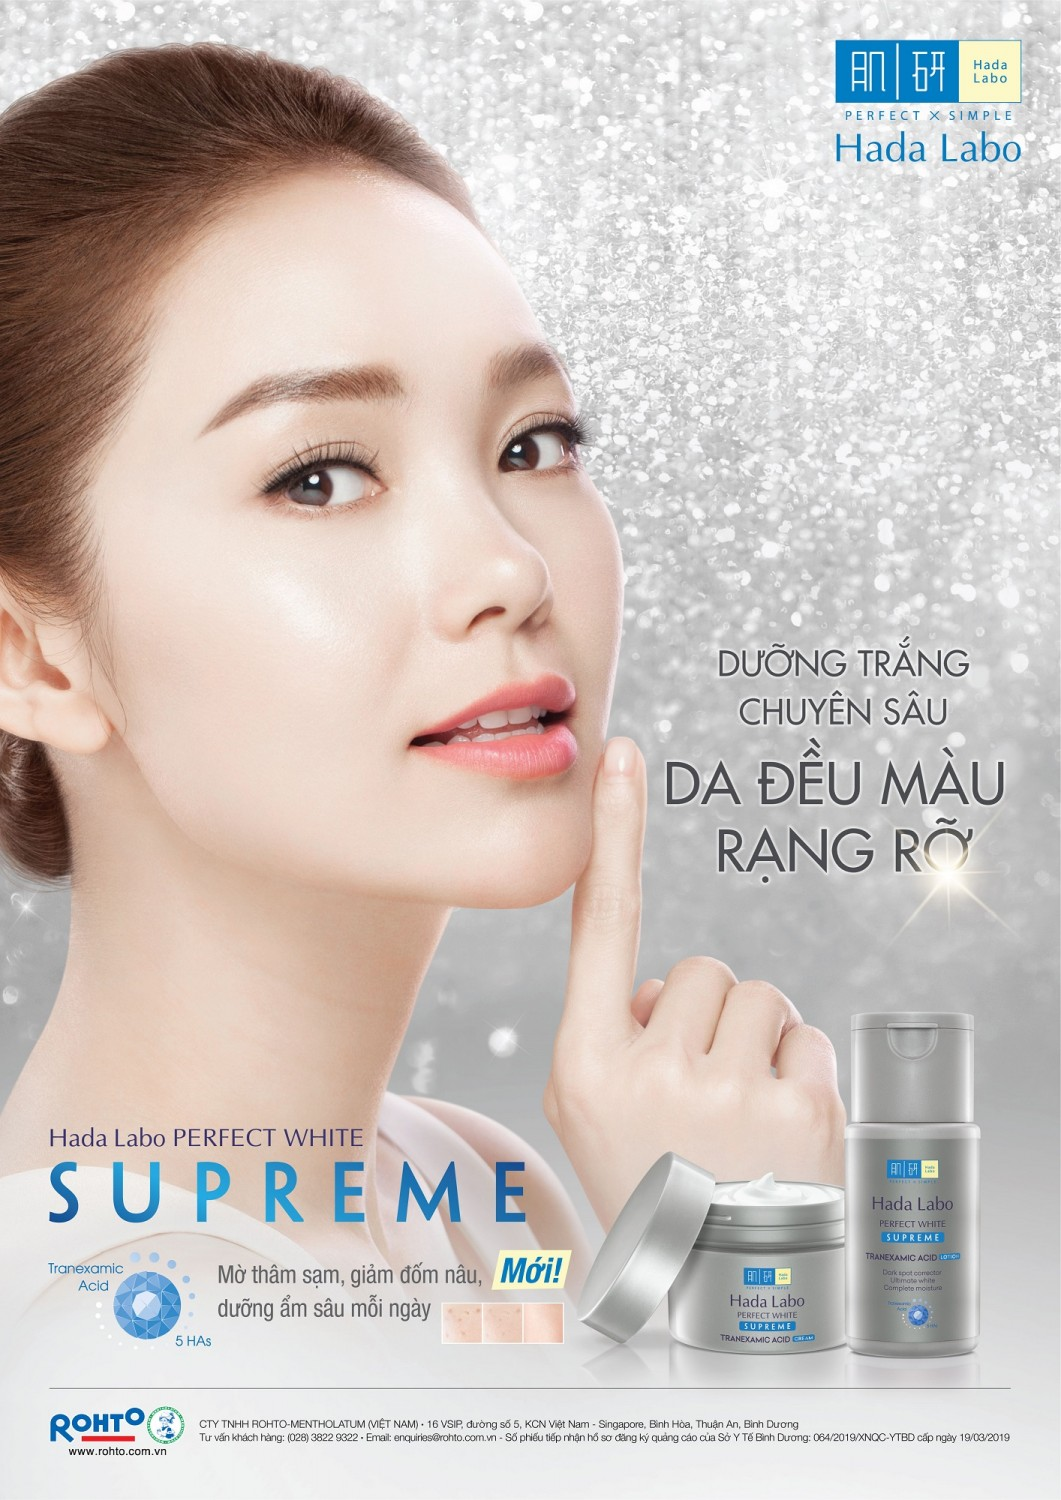 1 dung dich hada labo perfect white supreme 100ml 1